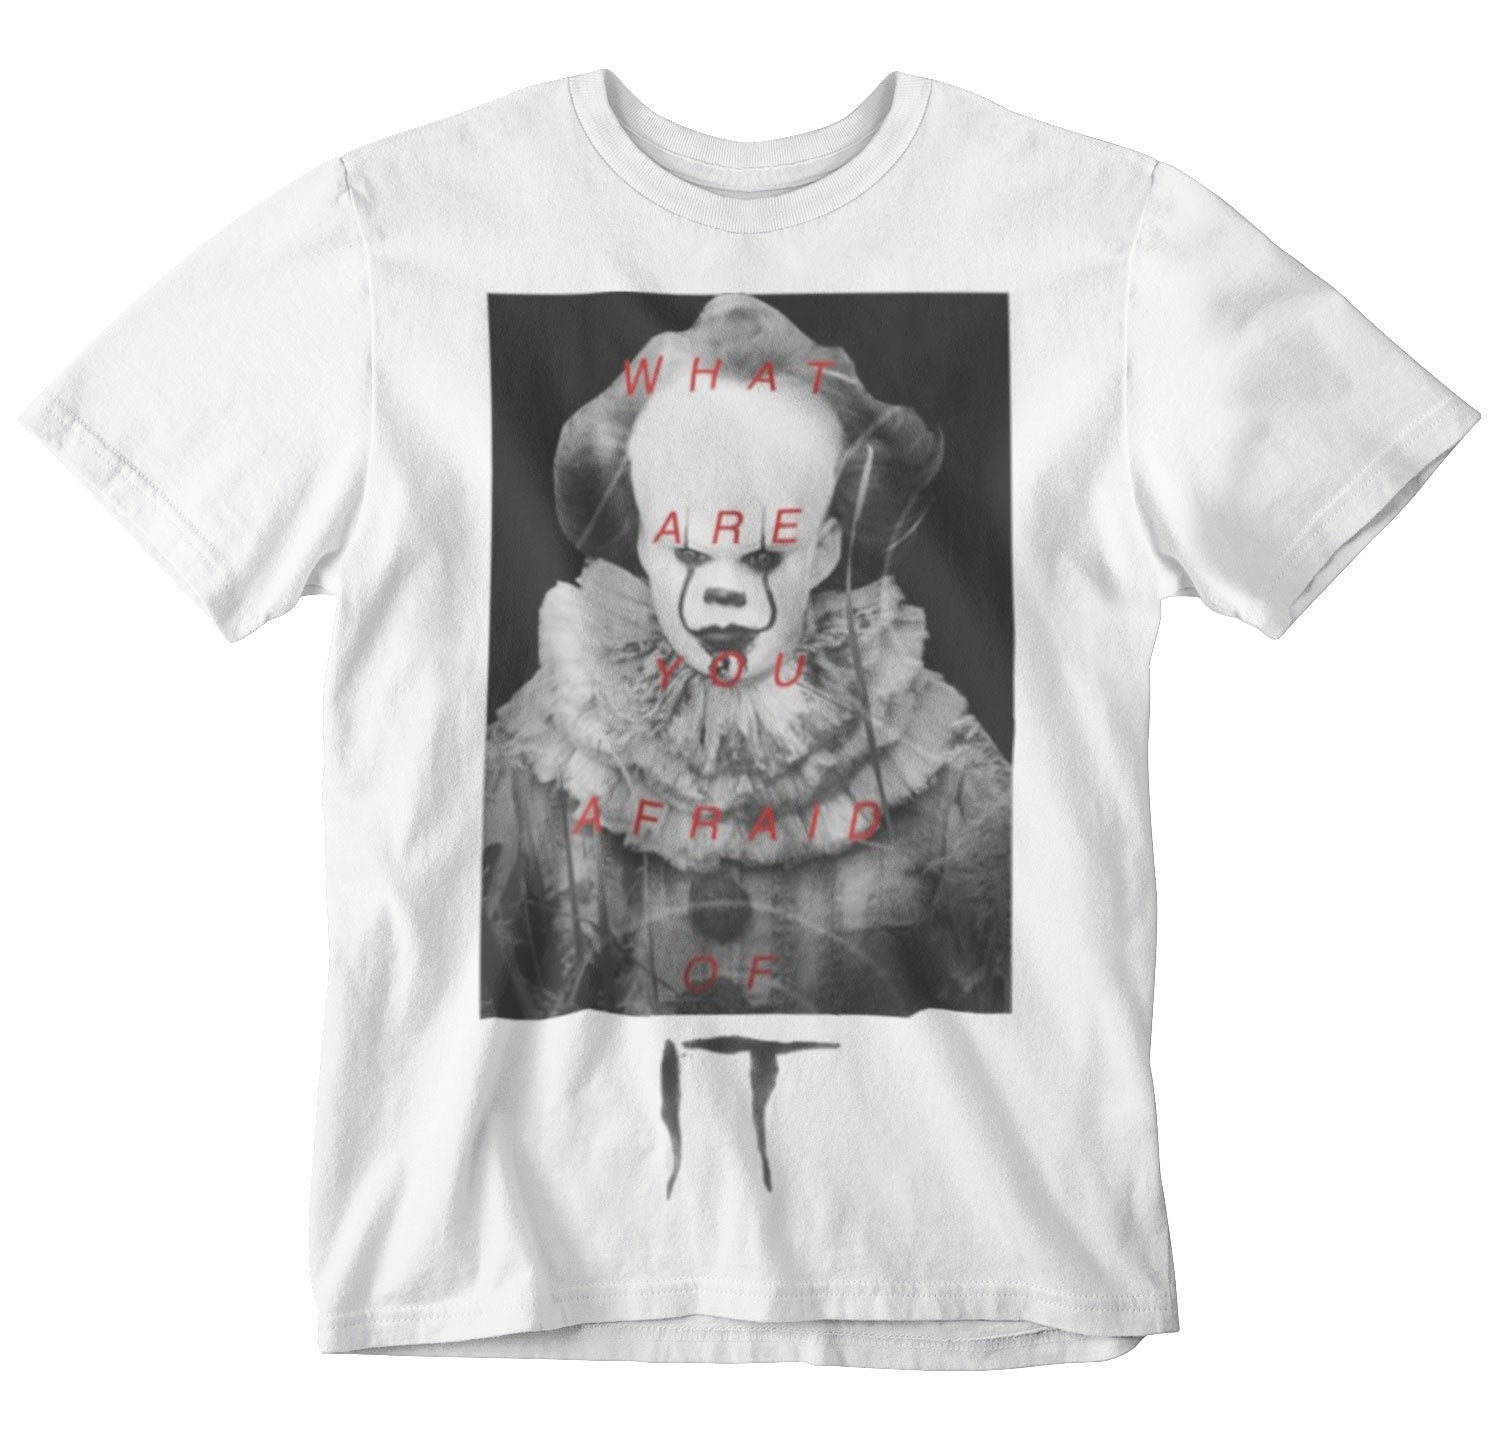 IT - What are You Afraid of White Tee